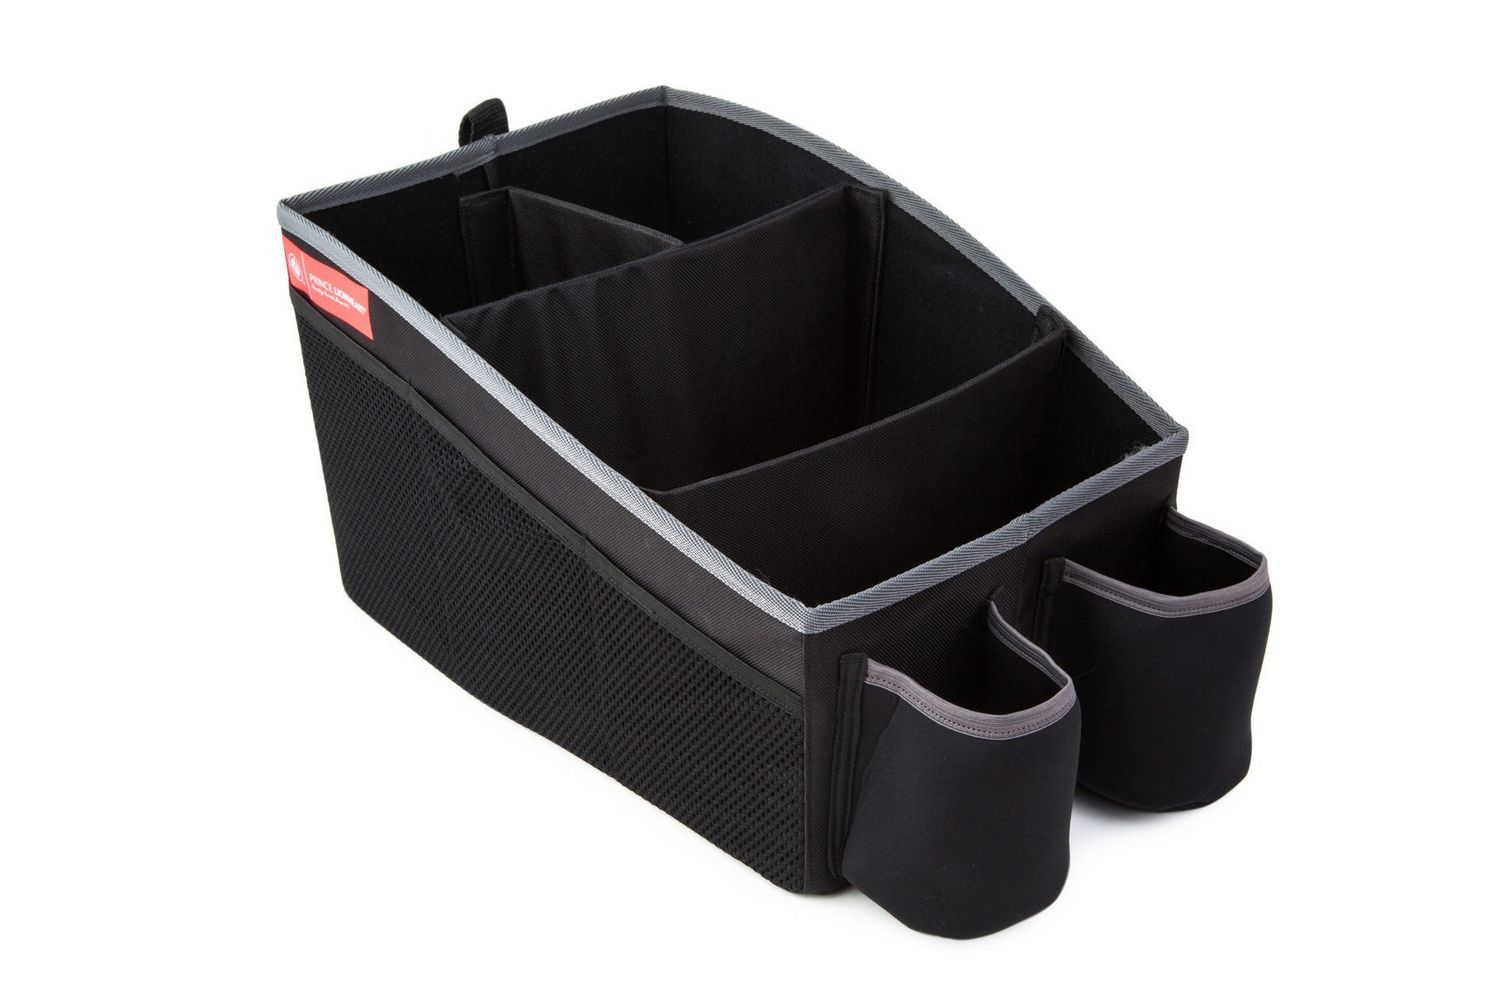 Prince Lionheart Travel Organiser insulated drink holders /& 6 side pockets customisable cargo area